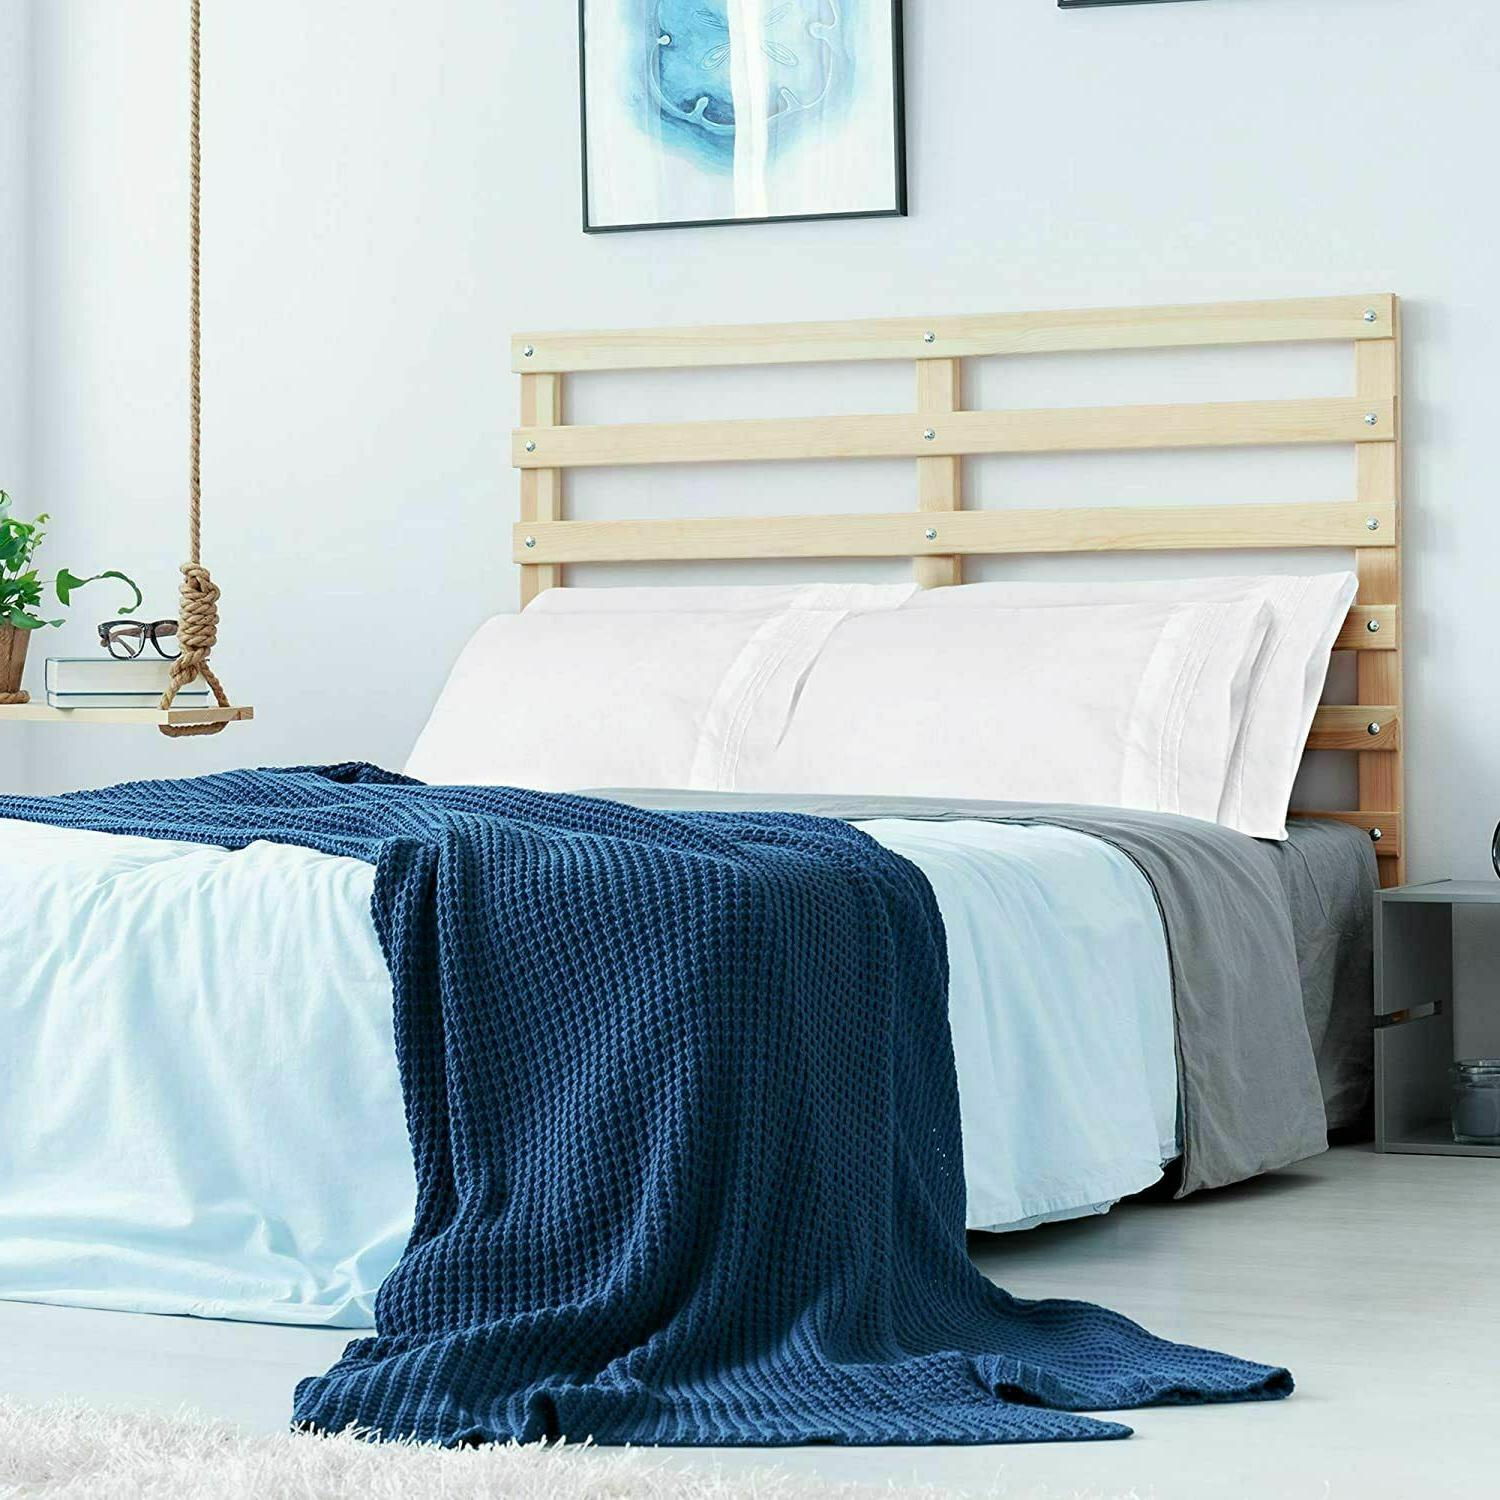 ❄Instant Bed King 2 Pack Supports Side Sleepers